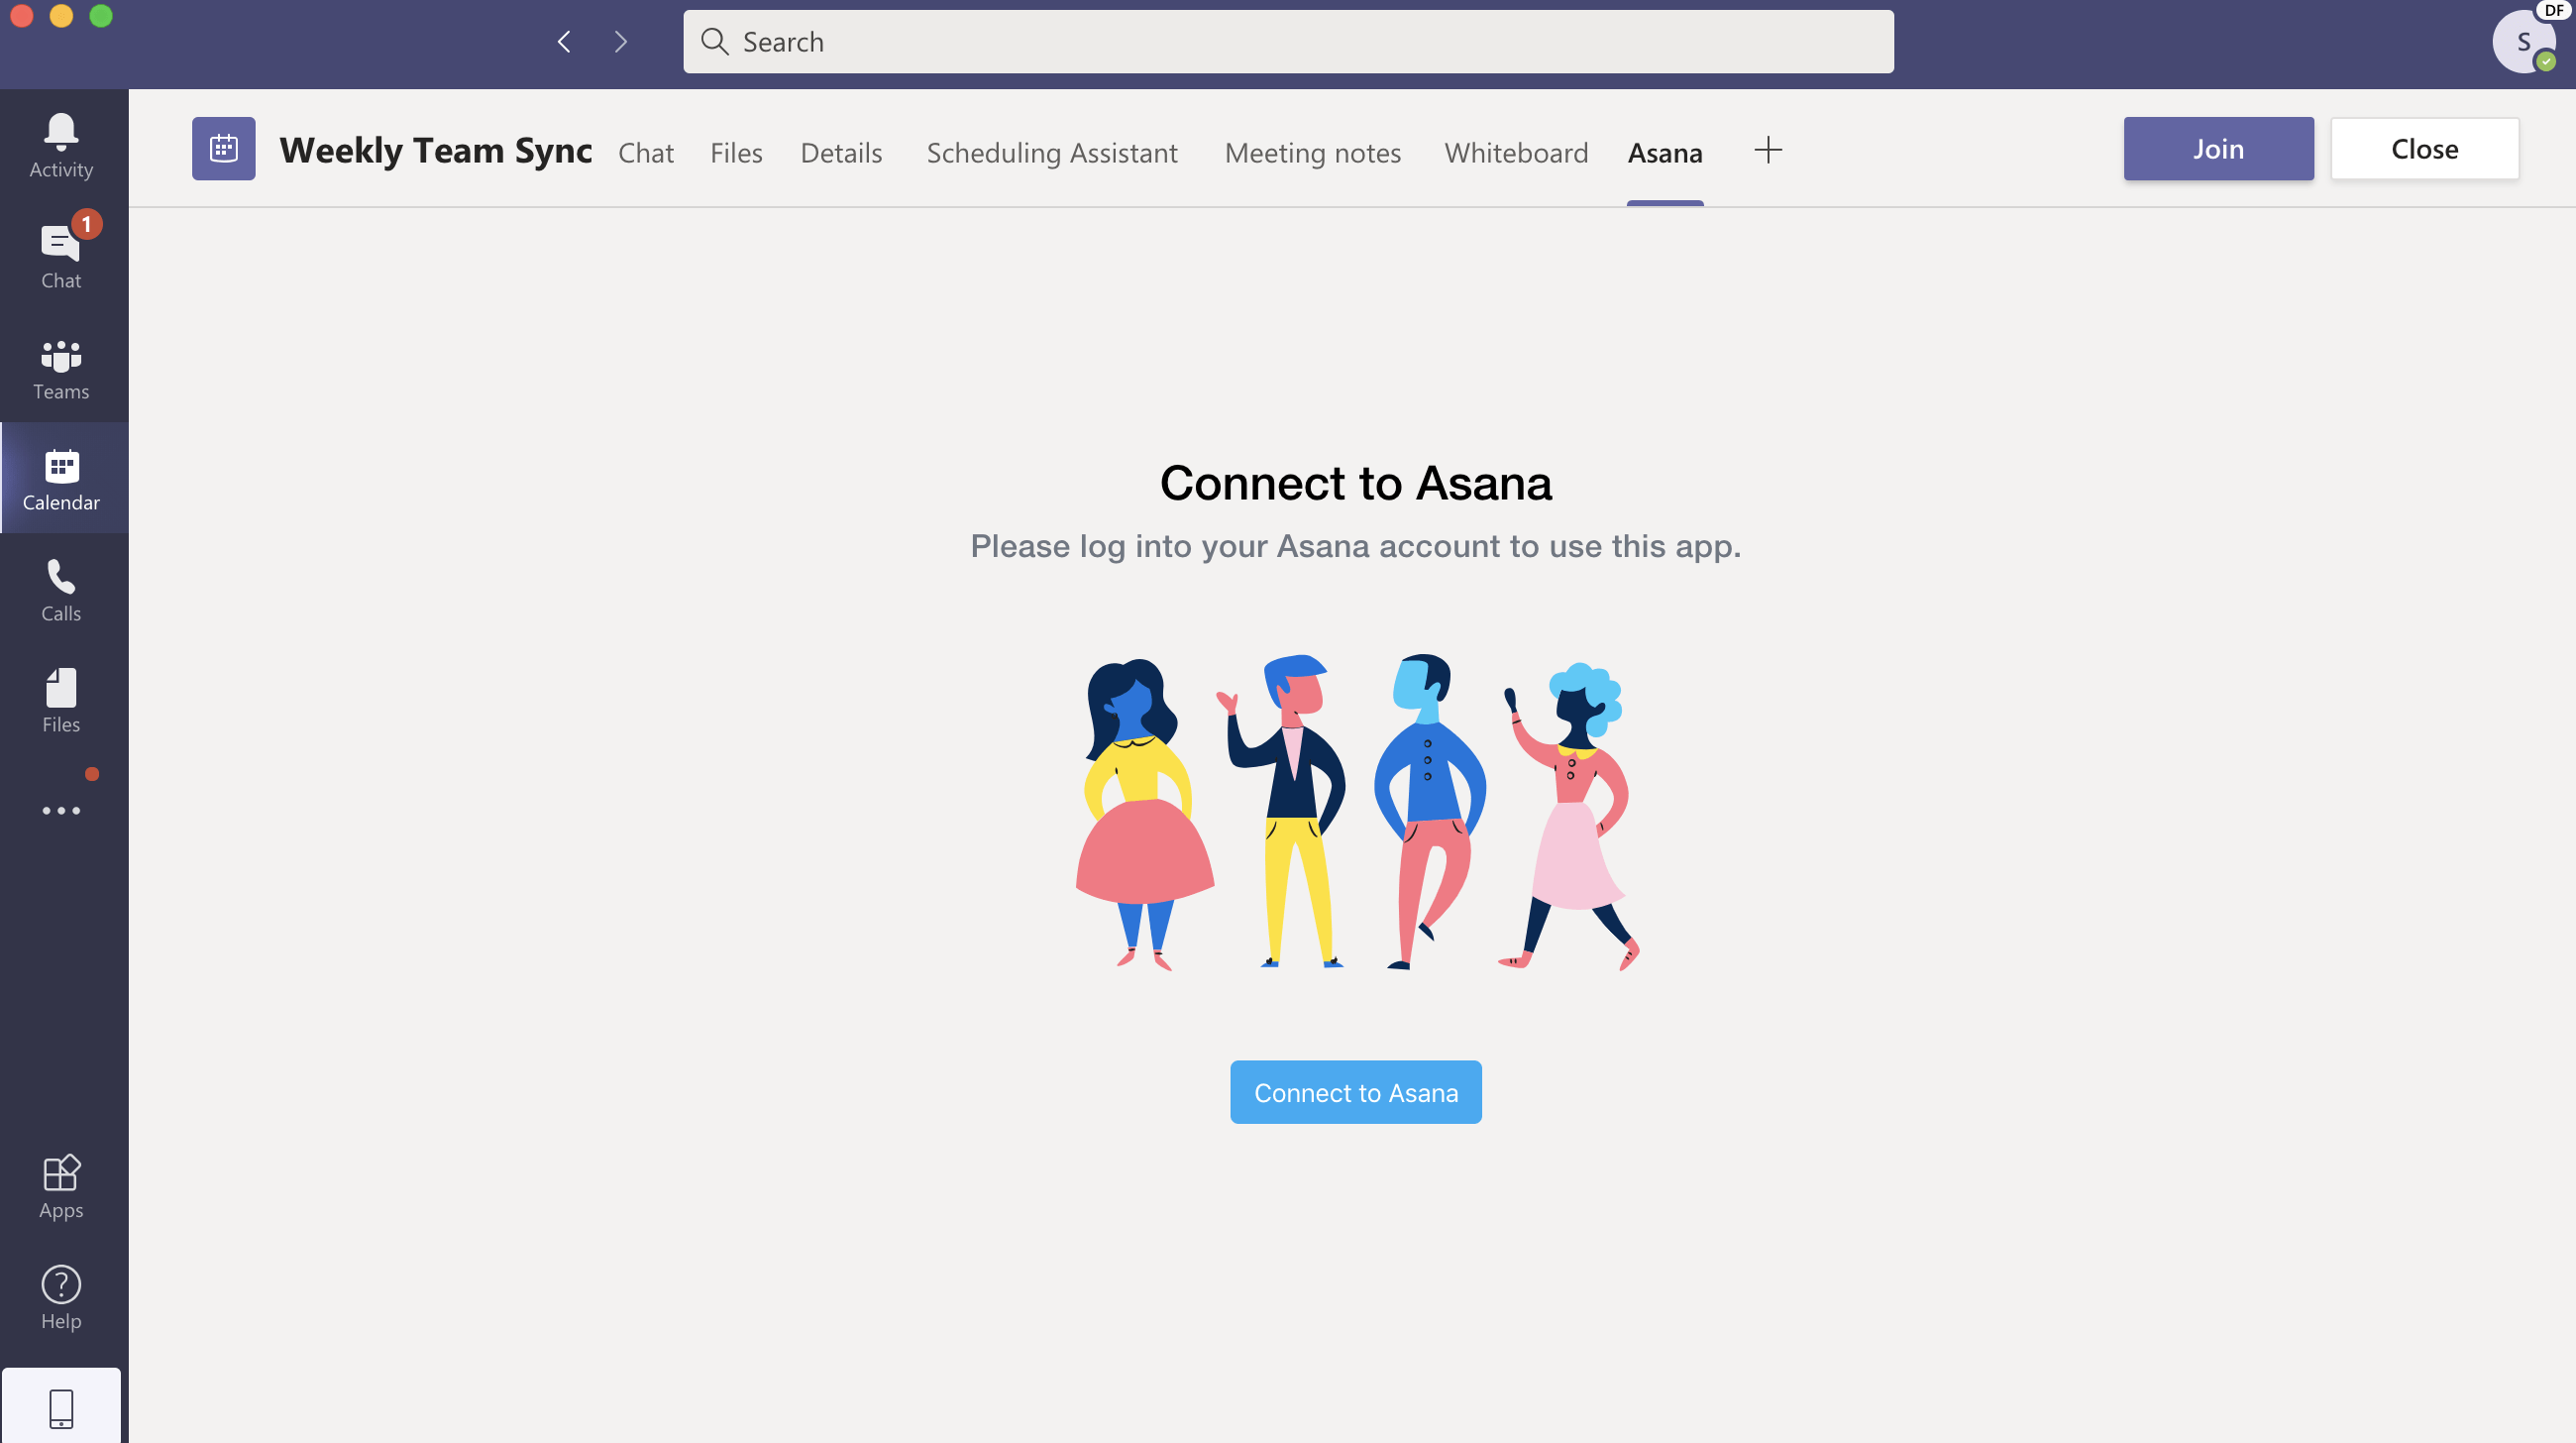 connect to asana